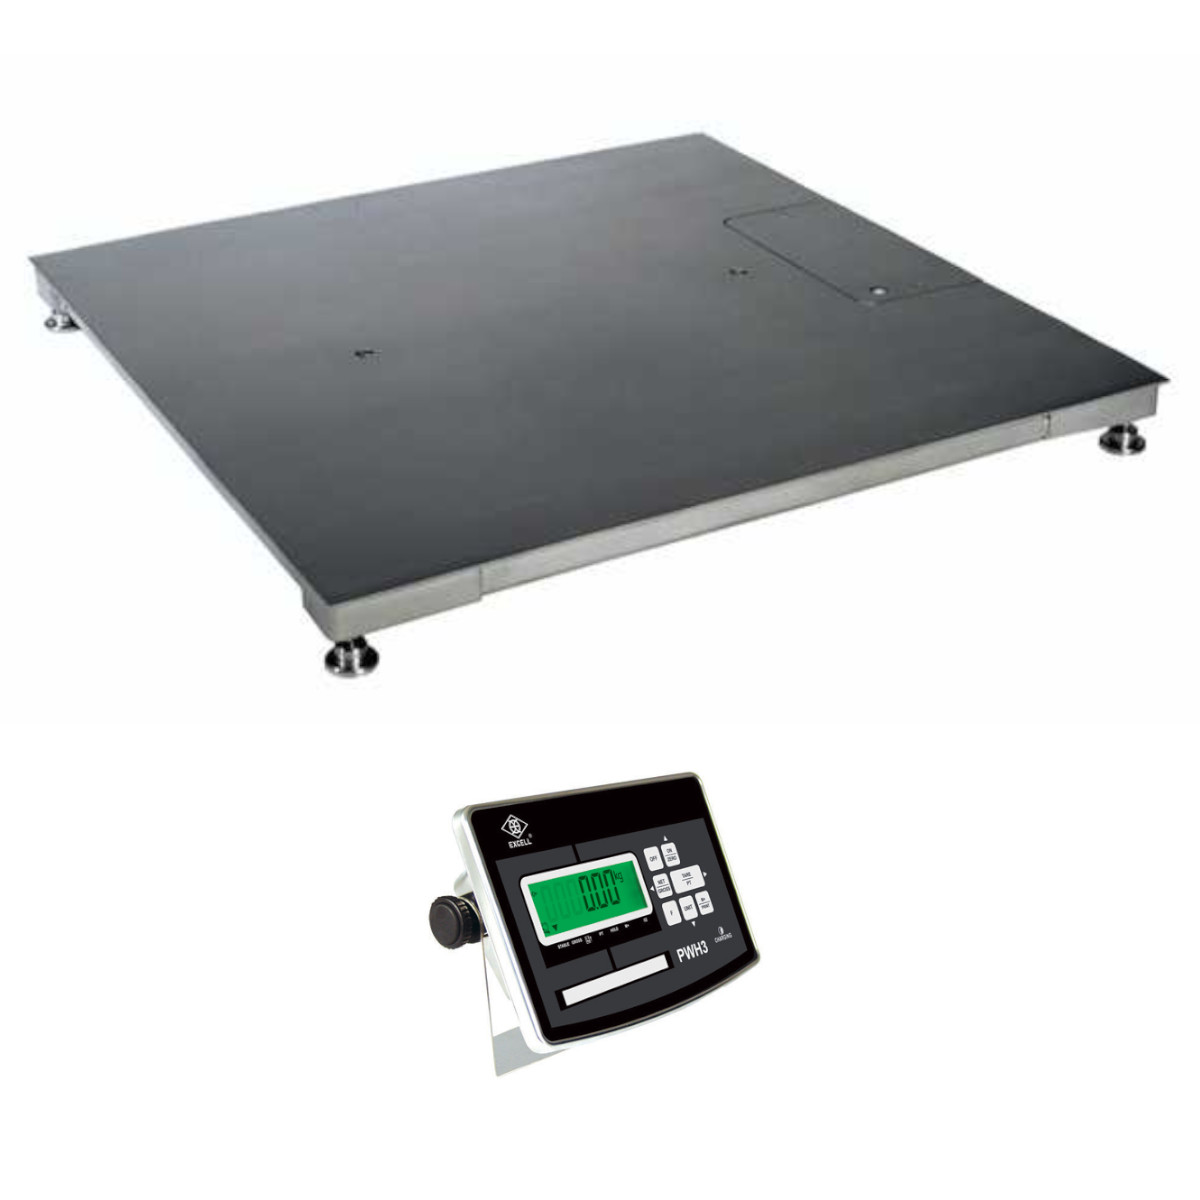 PW-TFS | weighingscales.com